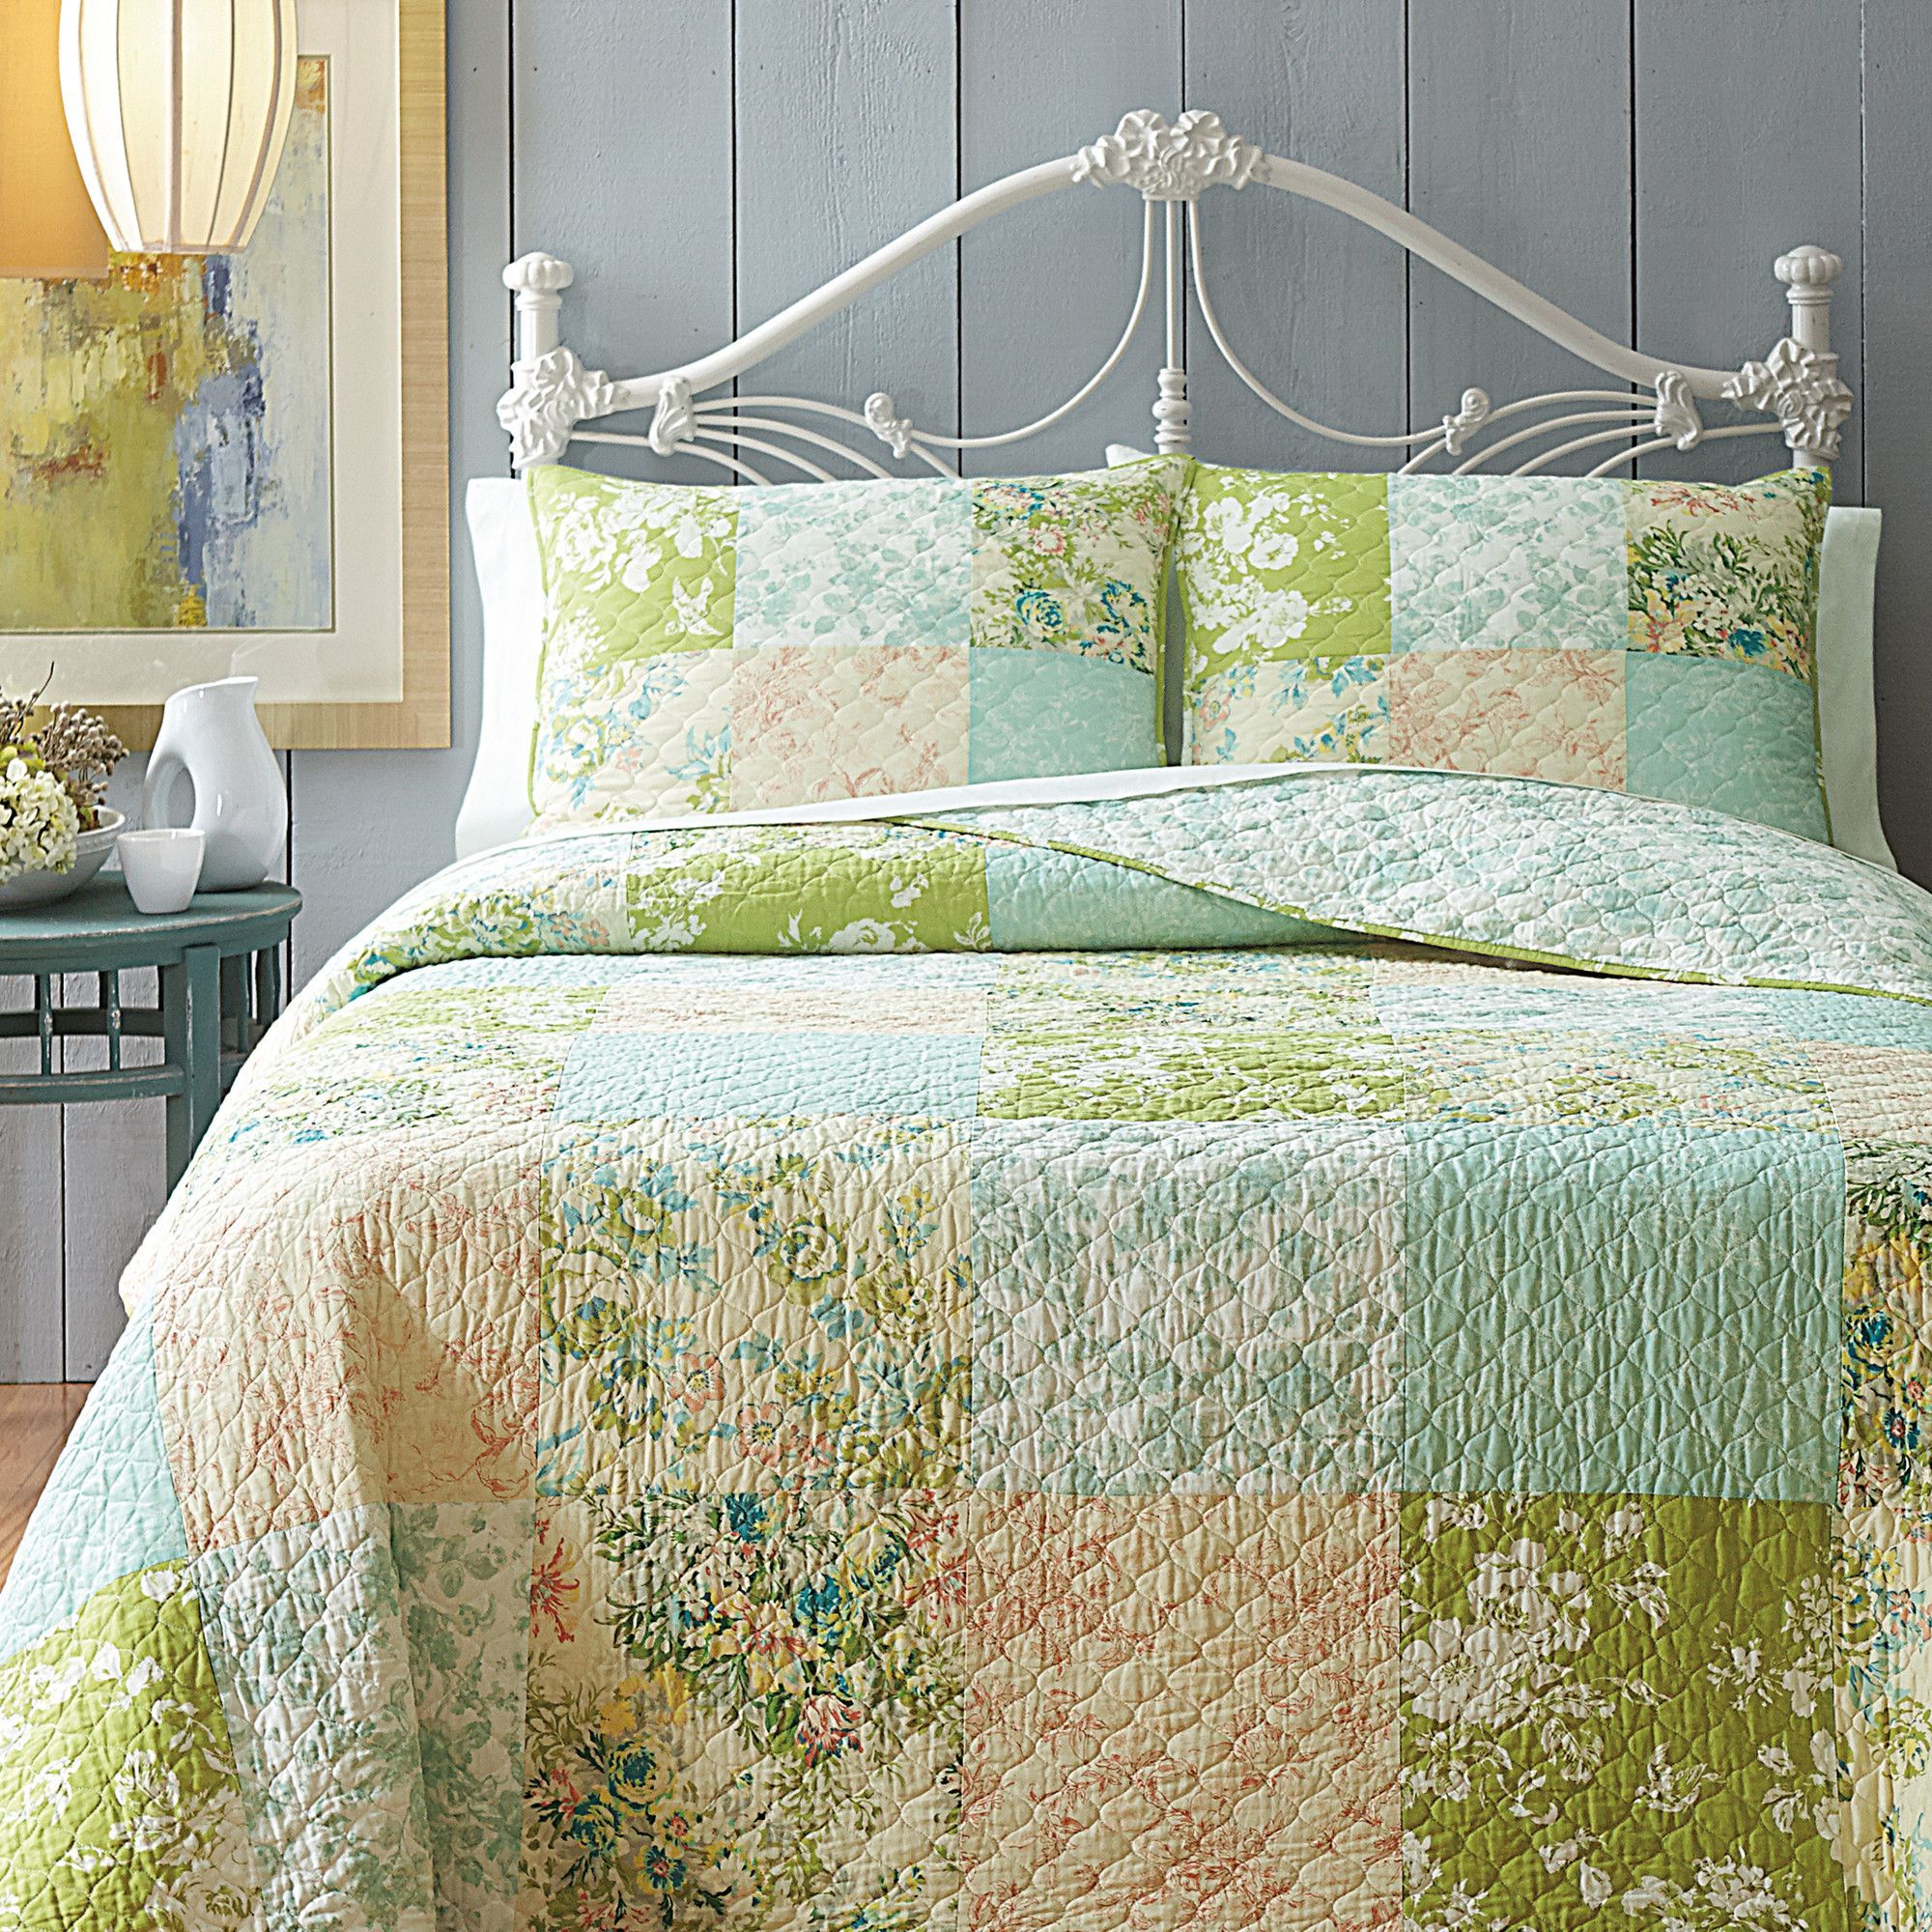 12 Perfect And Calming Bedroom Ideas For Women: Jessica Simpson Bedding, Bedding Sets